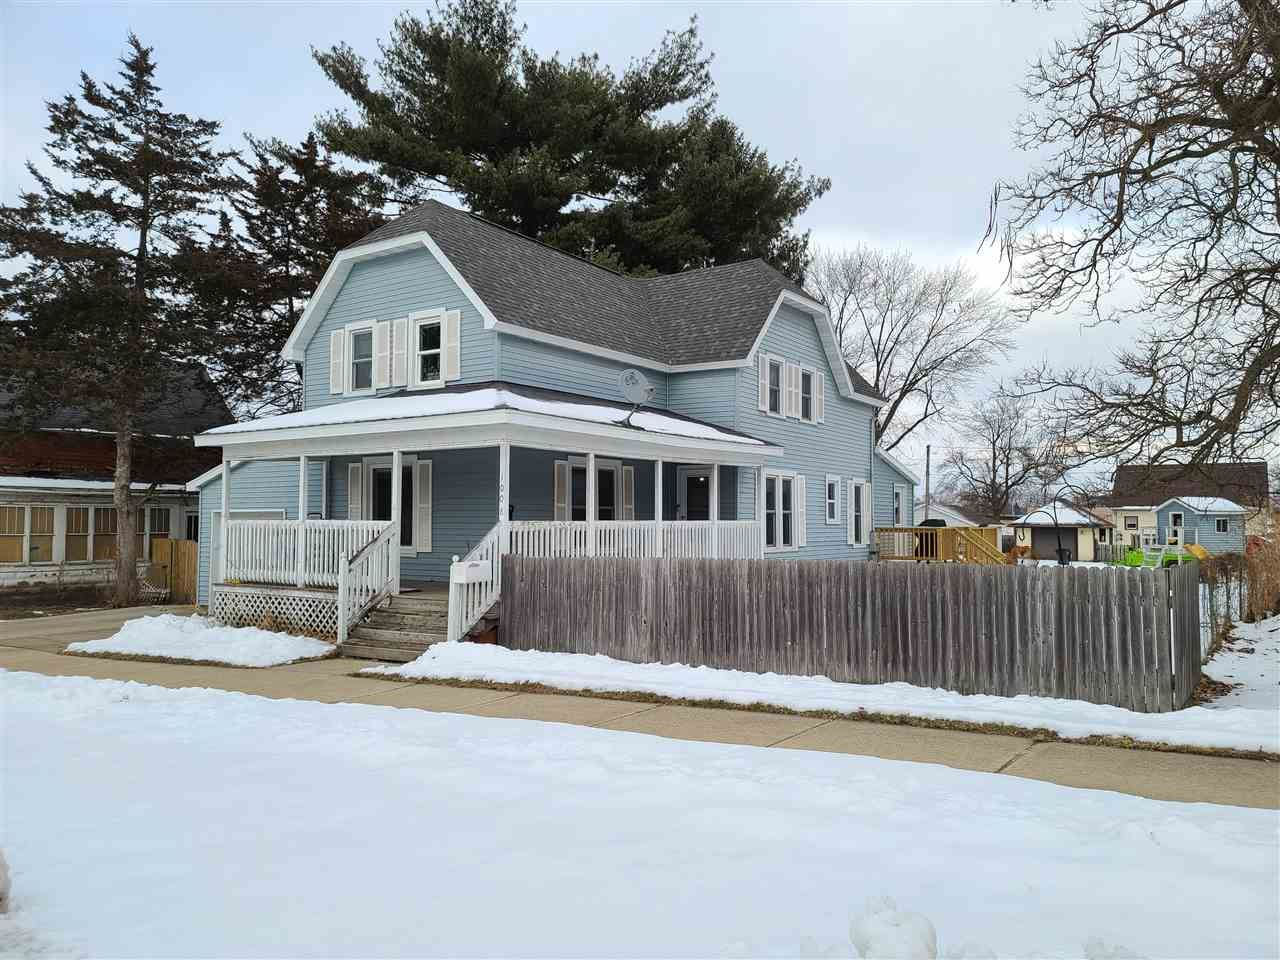 1008 S Glendale Ave, Tomah, WI 54660 - #: 1900761